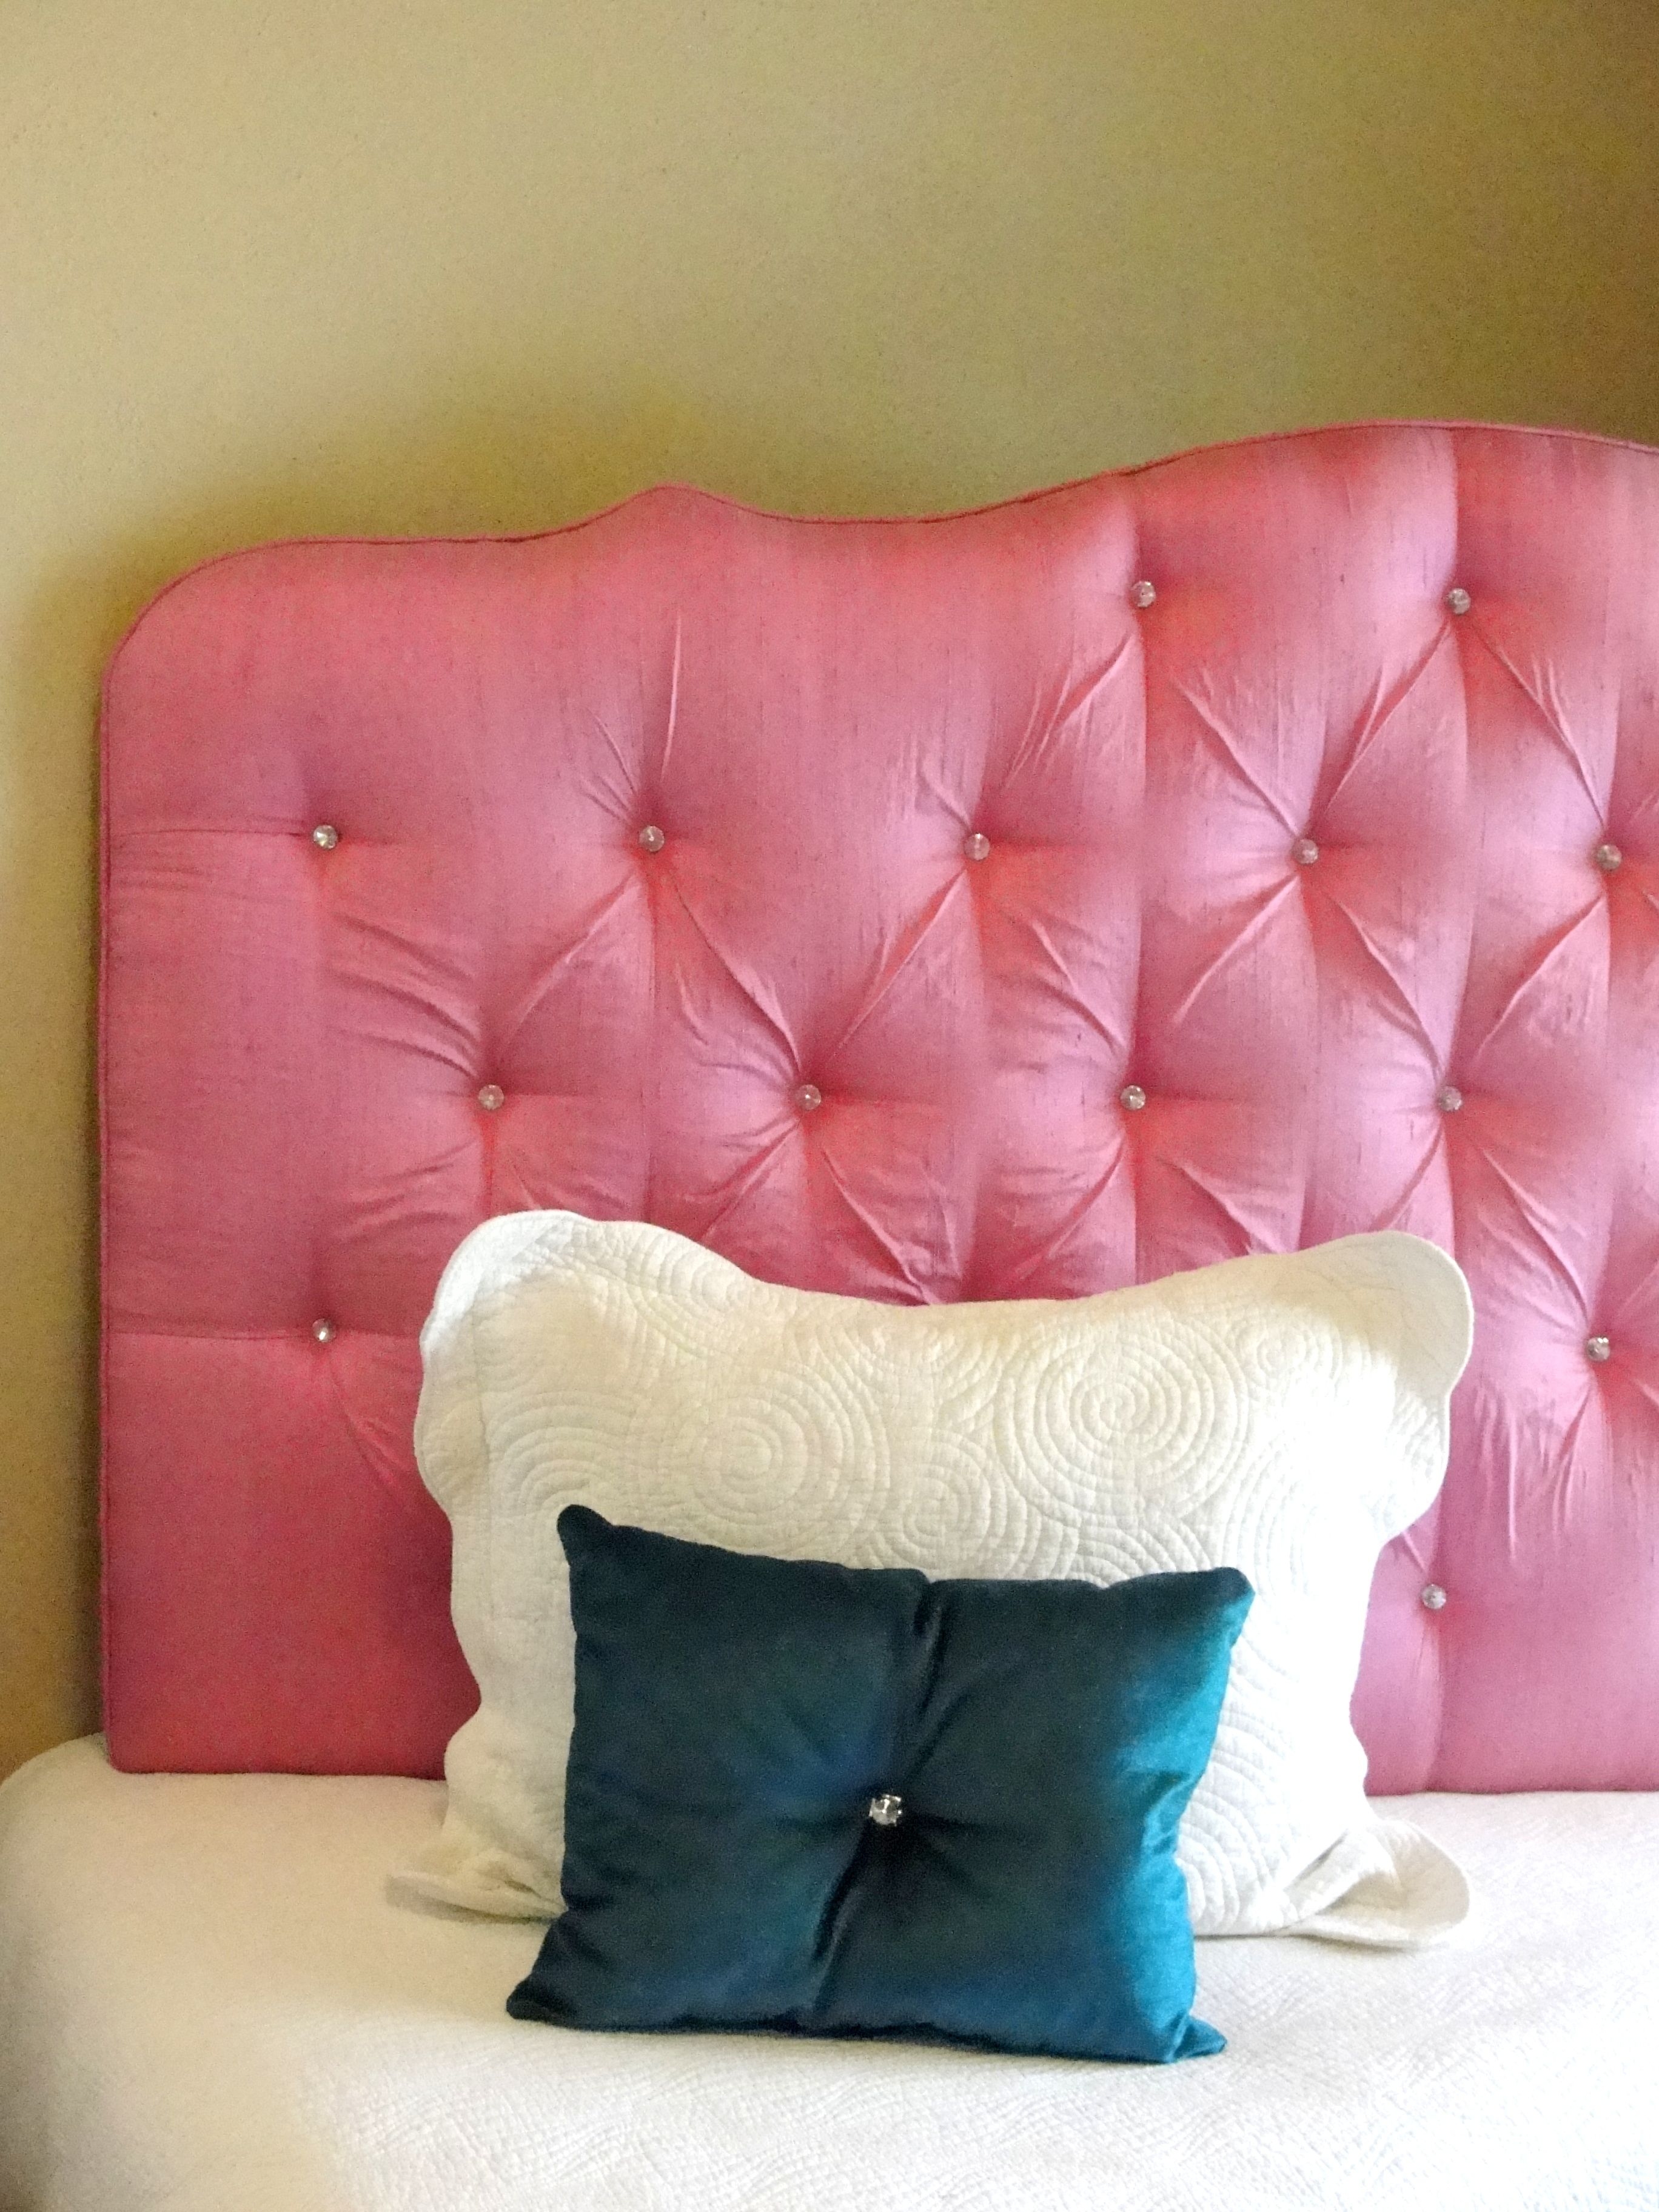 diy queen and bedrooms king headboards single only black california white extra uk double sale tufted superking leather high footboard beds full wood kingaes upholstered of modern size for with padded headboard nailhead back fabric best custom tall image